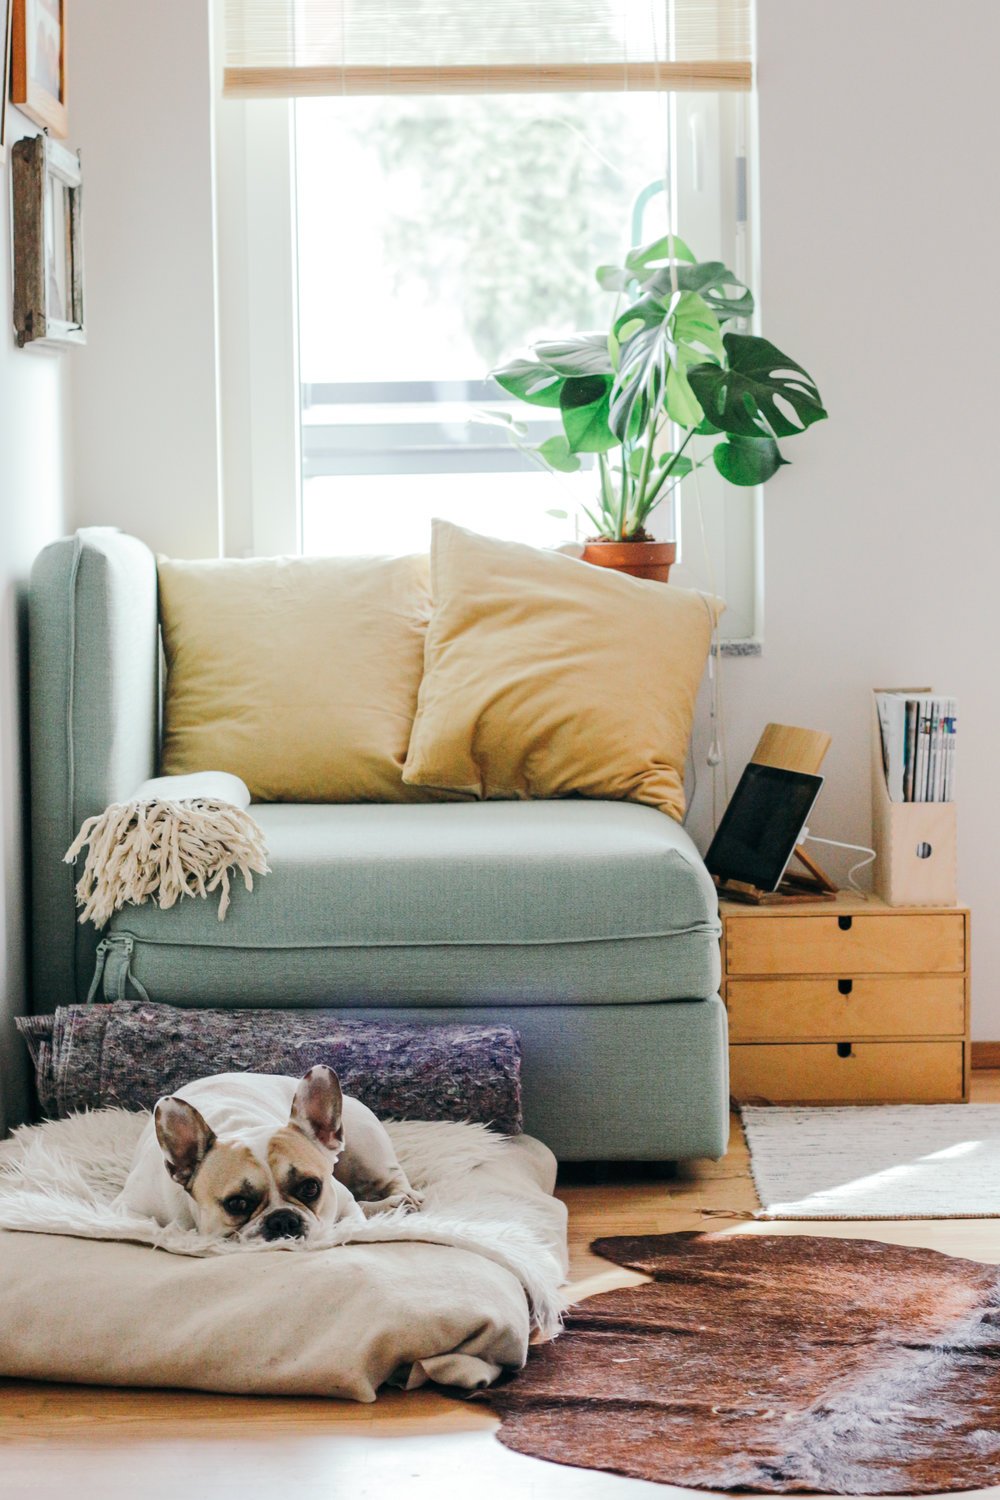 We are the non-toxic cleaning experts. - Our naturally scented products are gentle on you and your family (you too Fido!), but tough on filth, grease and dirt.